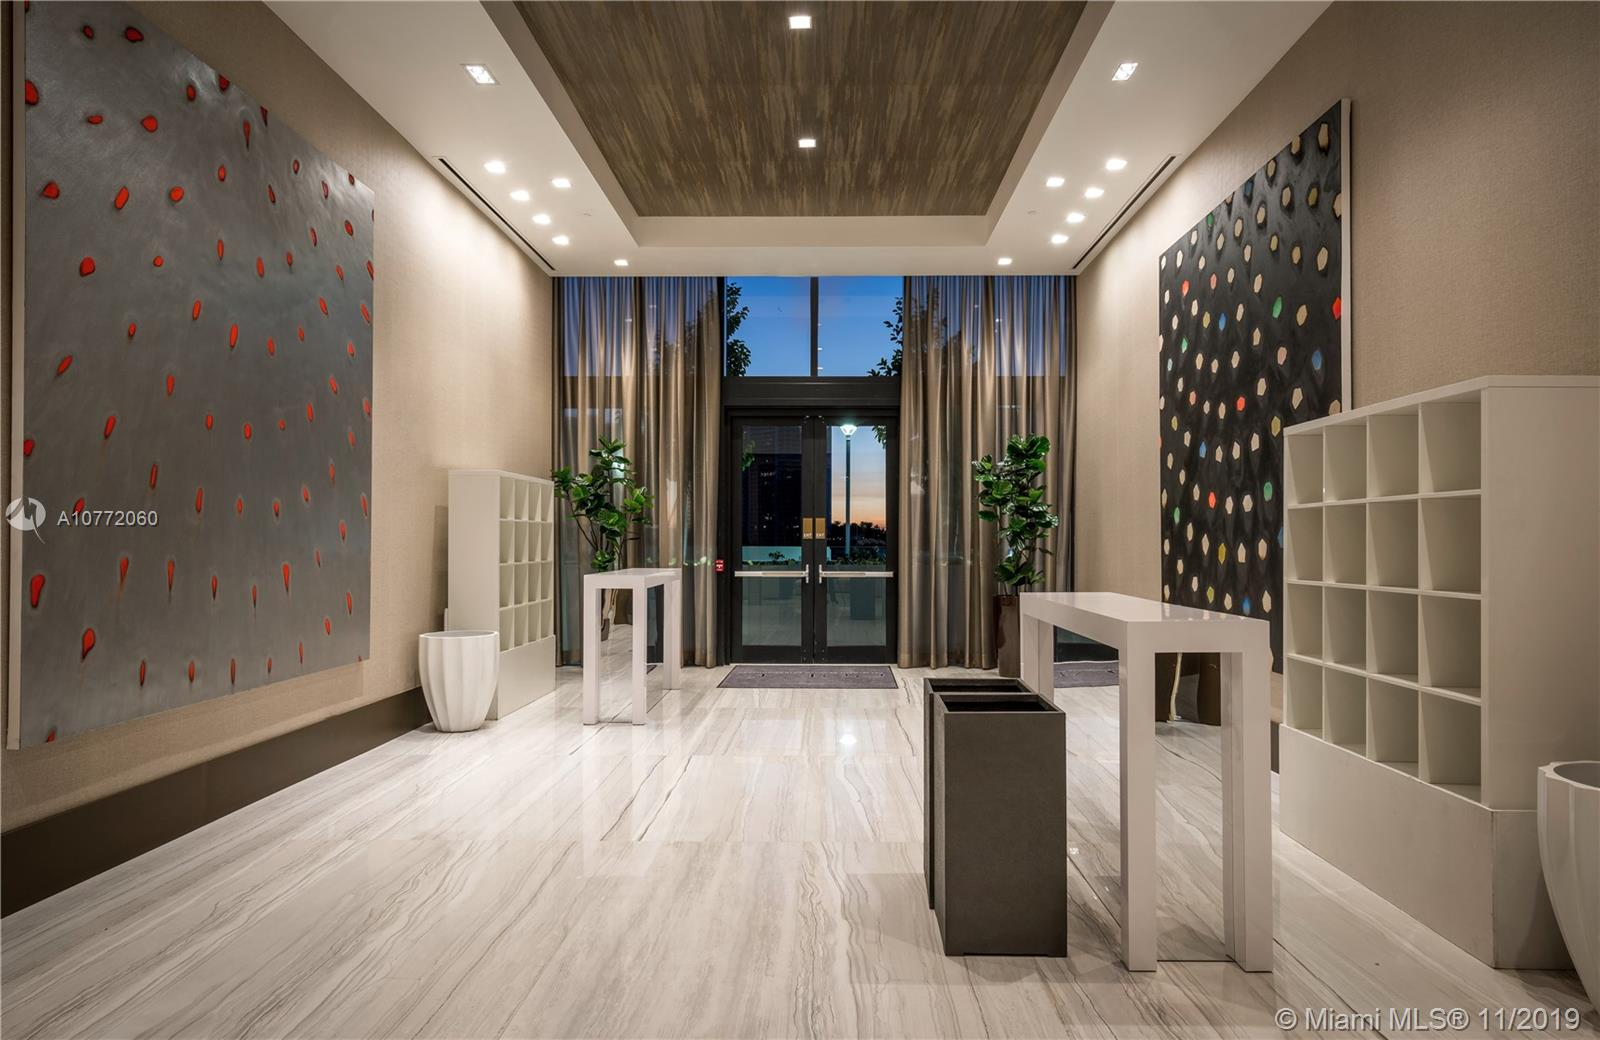 DEVELOPER CLOSE OUT...Beautiful corner unit!!! Glass on all three sides. Includes flooring, custom built in closets, dropped ceilings, window treatments, full developer warranty! Amenities include: private gatehouse entry, full time concierge, 10,000 sq/ft of gym/spa, ,marina, pier, 2 pools, restaurant, Wine Cellar, Cigar Room, Social Rooms, teenage room, Guest Suites, Caterers Kitchen with Private dining room and MORE!!! This is a developer owned unit. Extra parking, extra storage, private garages, marina slips, guest suites, hobby rooms are only available by purchasing through developer. Not available with resales unless they have already. We also have other residences available that are not listed. Many other advantages of purchasing direct.